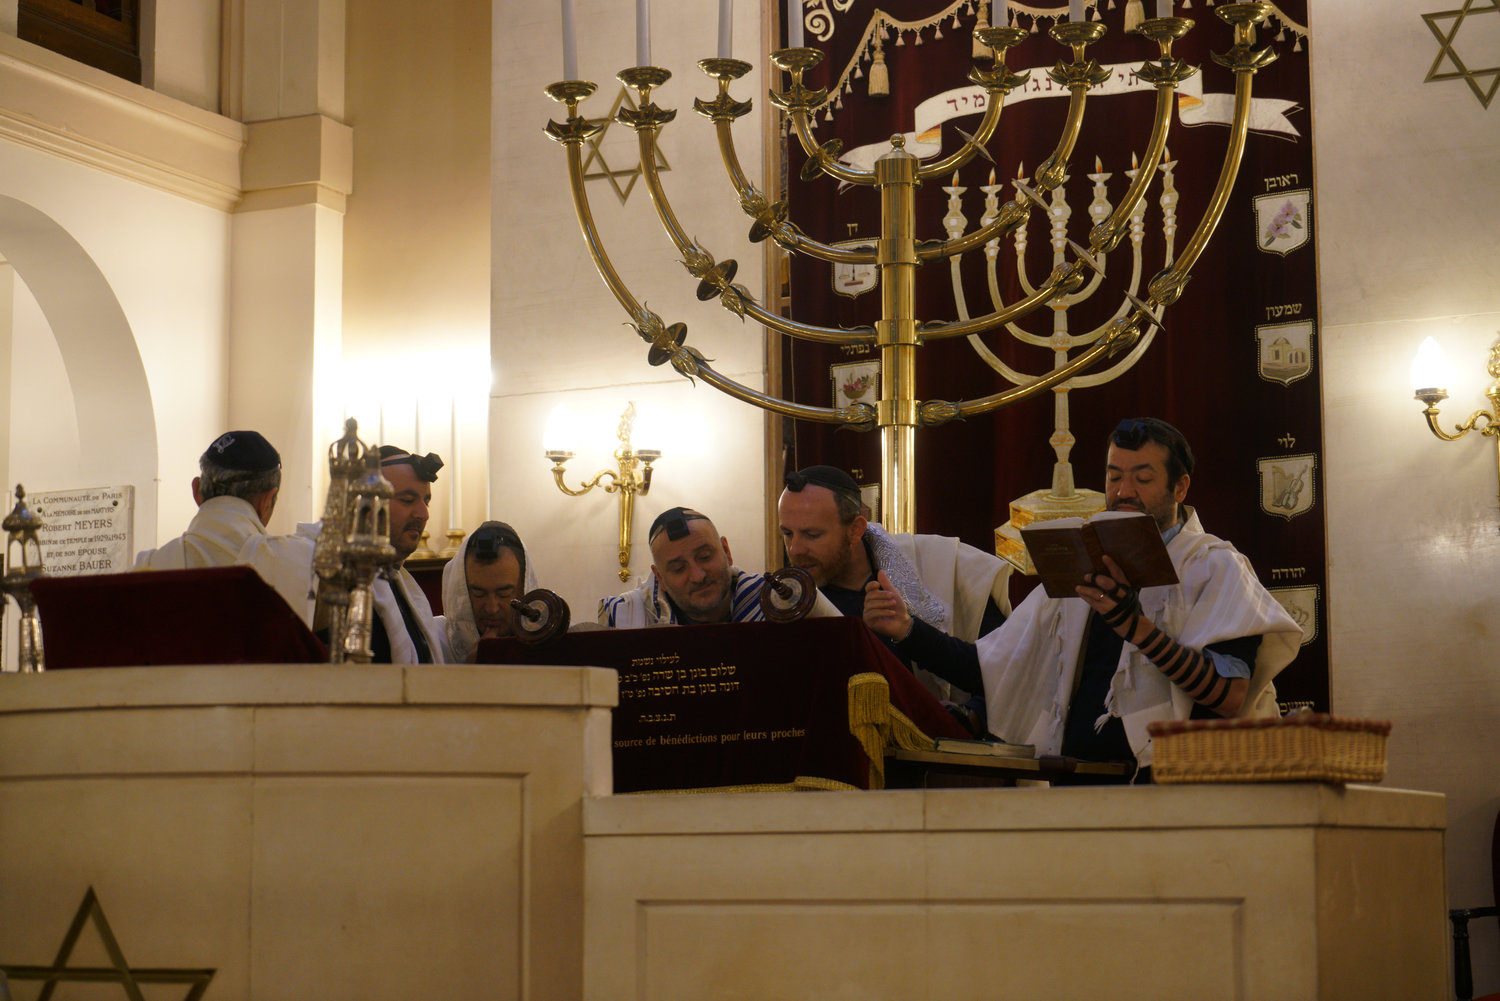 Rabbi Michael Azoulay, second from right, reading the Torah with congregants at the synagogue of Neuilly-sur-Seine, a Paris suburb, Dec. 11, 2017.